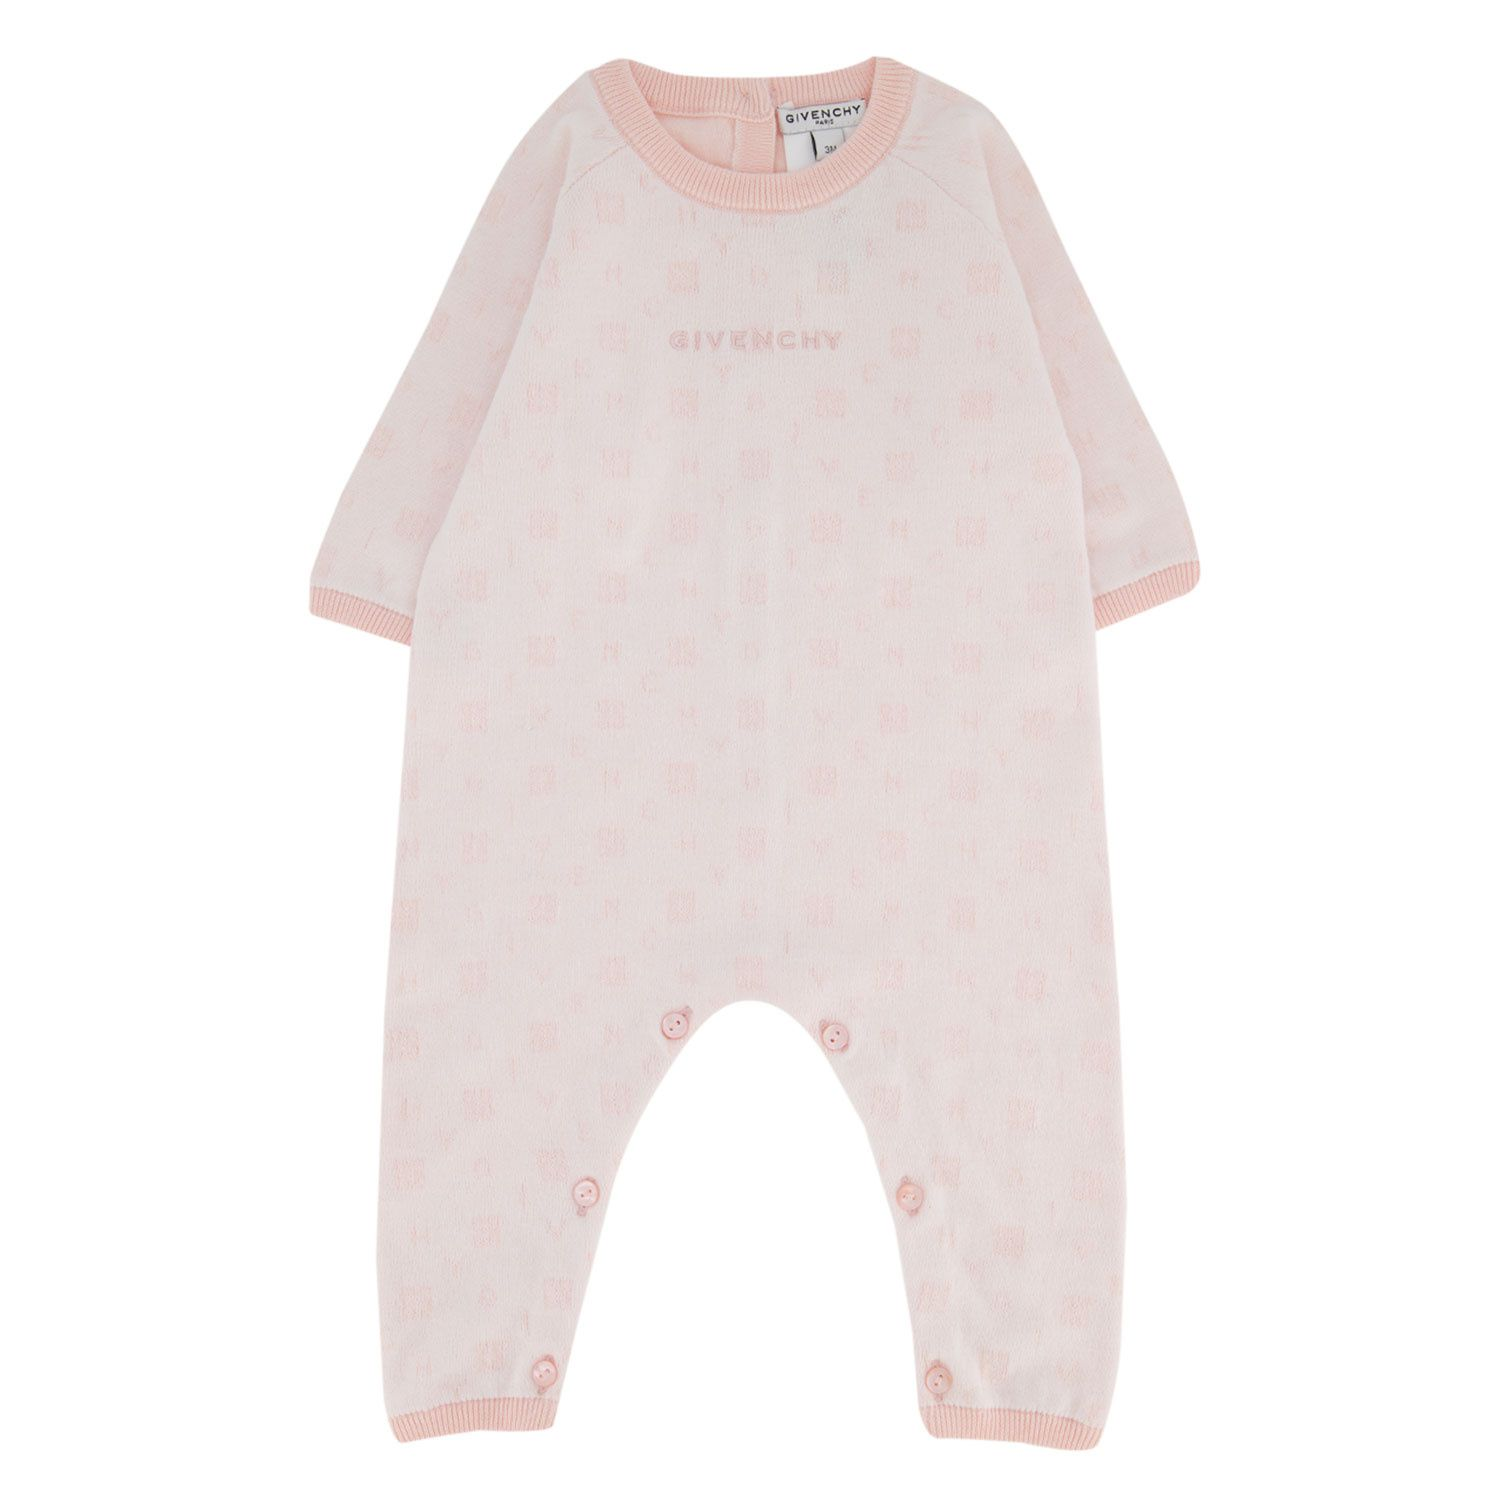 Picture of Givenchy H94051 baby playsuit light pink